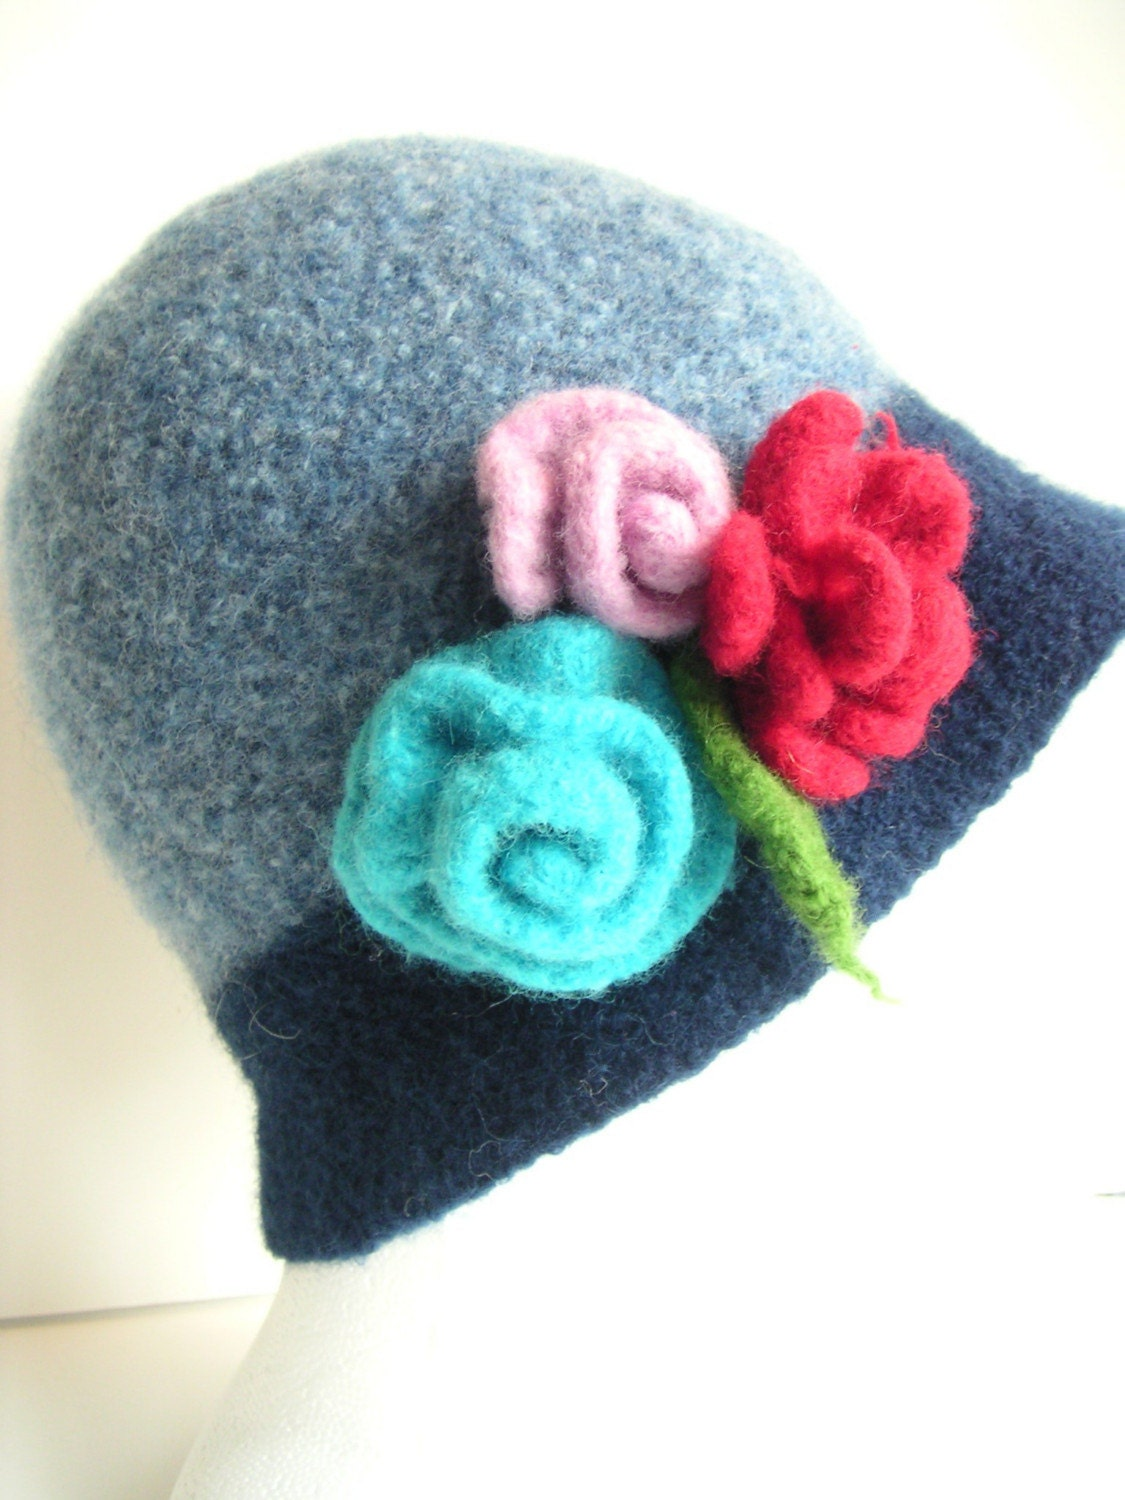 Felted Hat Knitting Pattern : KNIT Knitting Felted Pattern Flowers HAT by GraceKnittingPattern